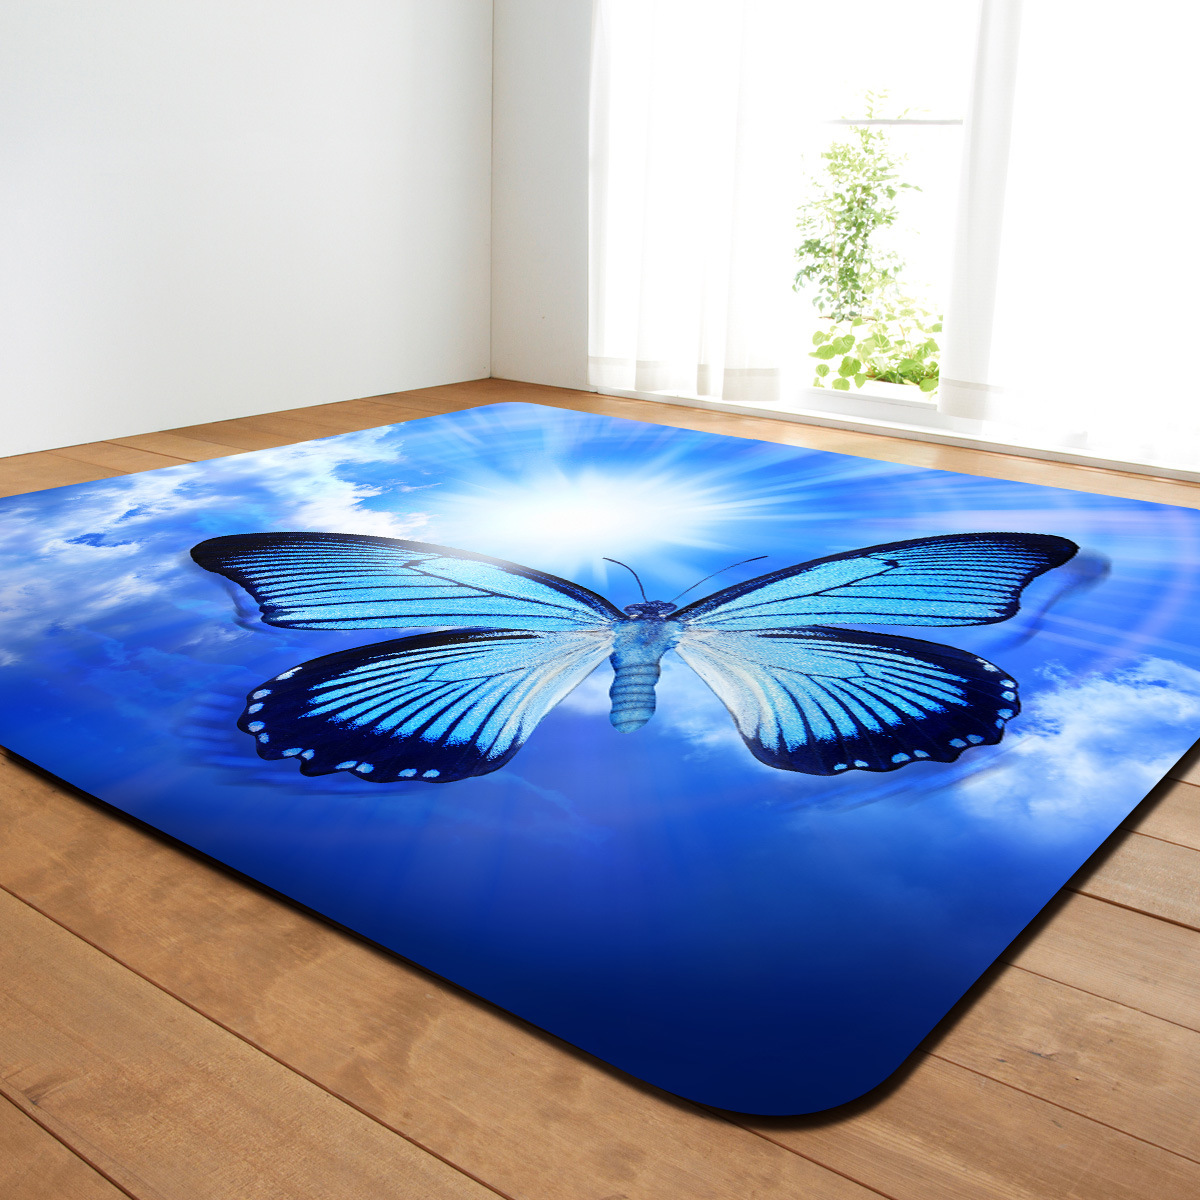 Zeegle HD Butterfly Painting Rugs And Carpets For Home Living Room Kids Bedroom Carpets Anti-slip Office Chair Floor Mats